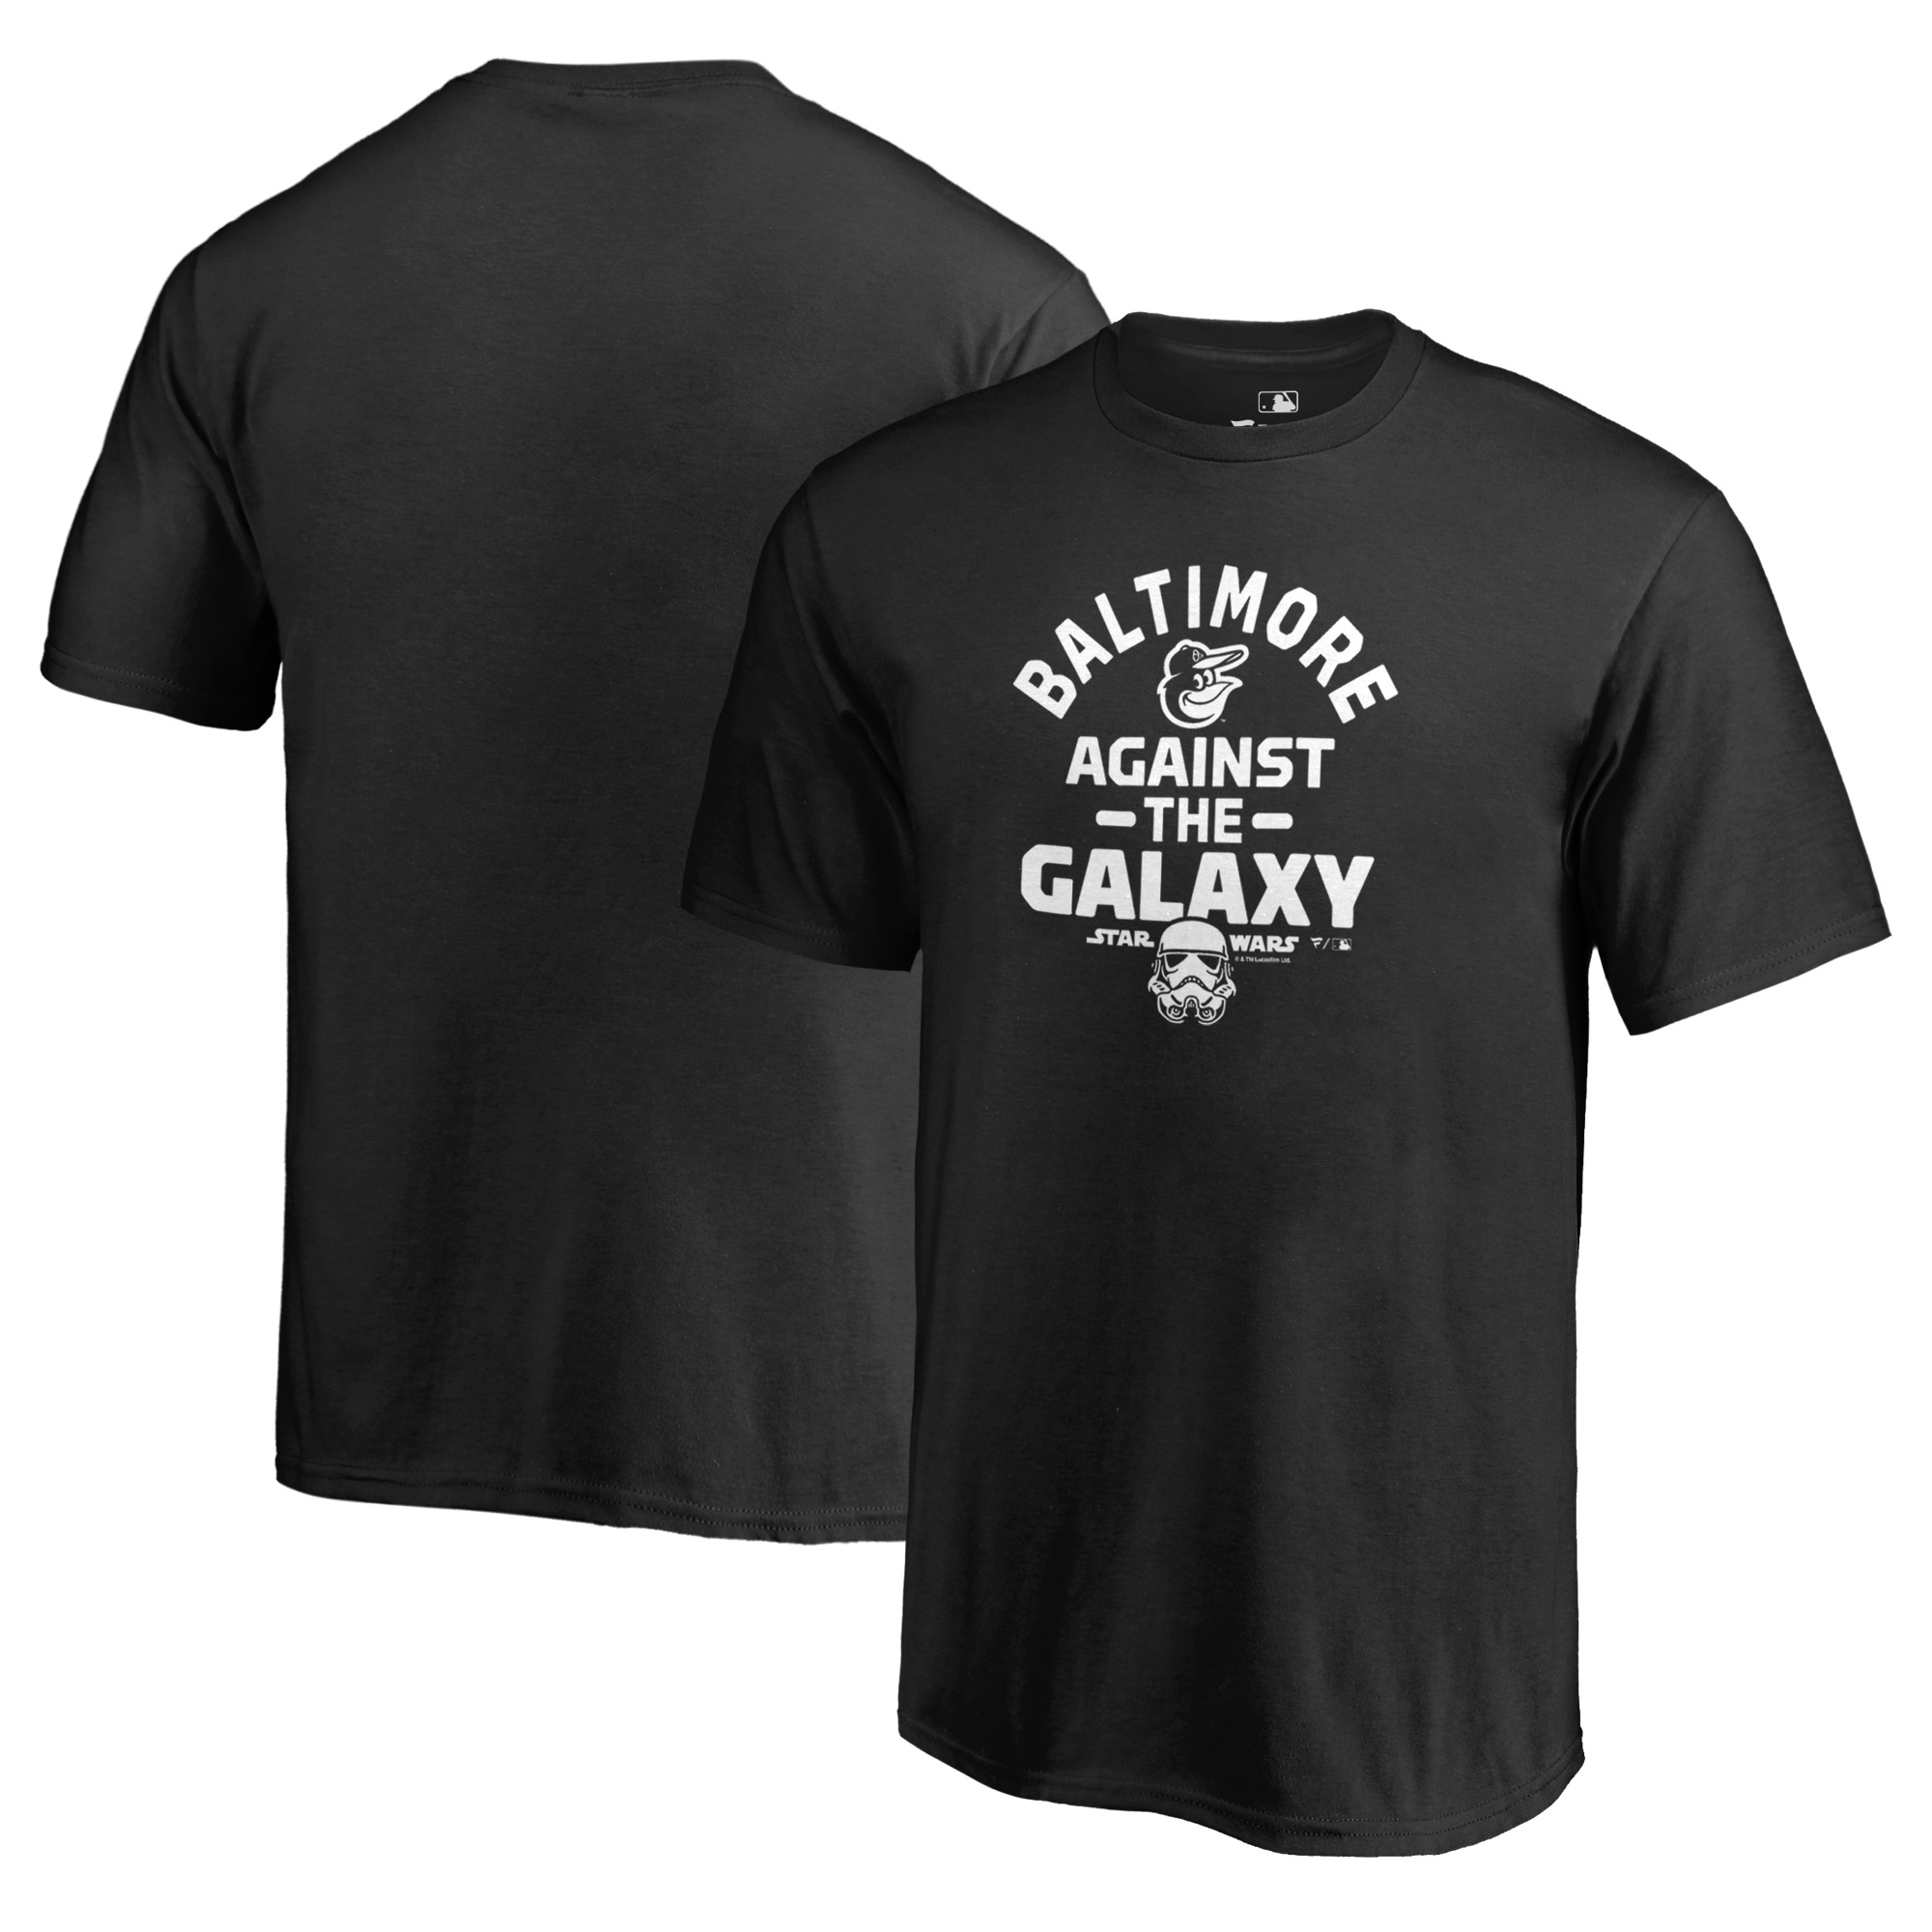 Baltimore Orioles Fanatics Branded Youth MLB Star Wars Against The Galaxy T-Shirt - Black